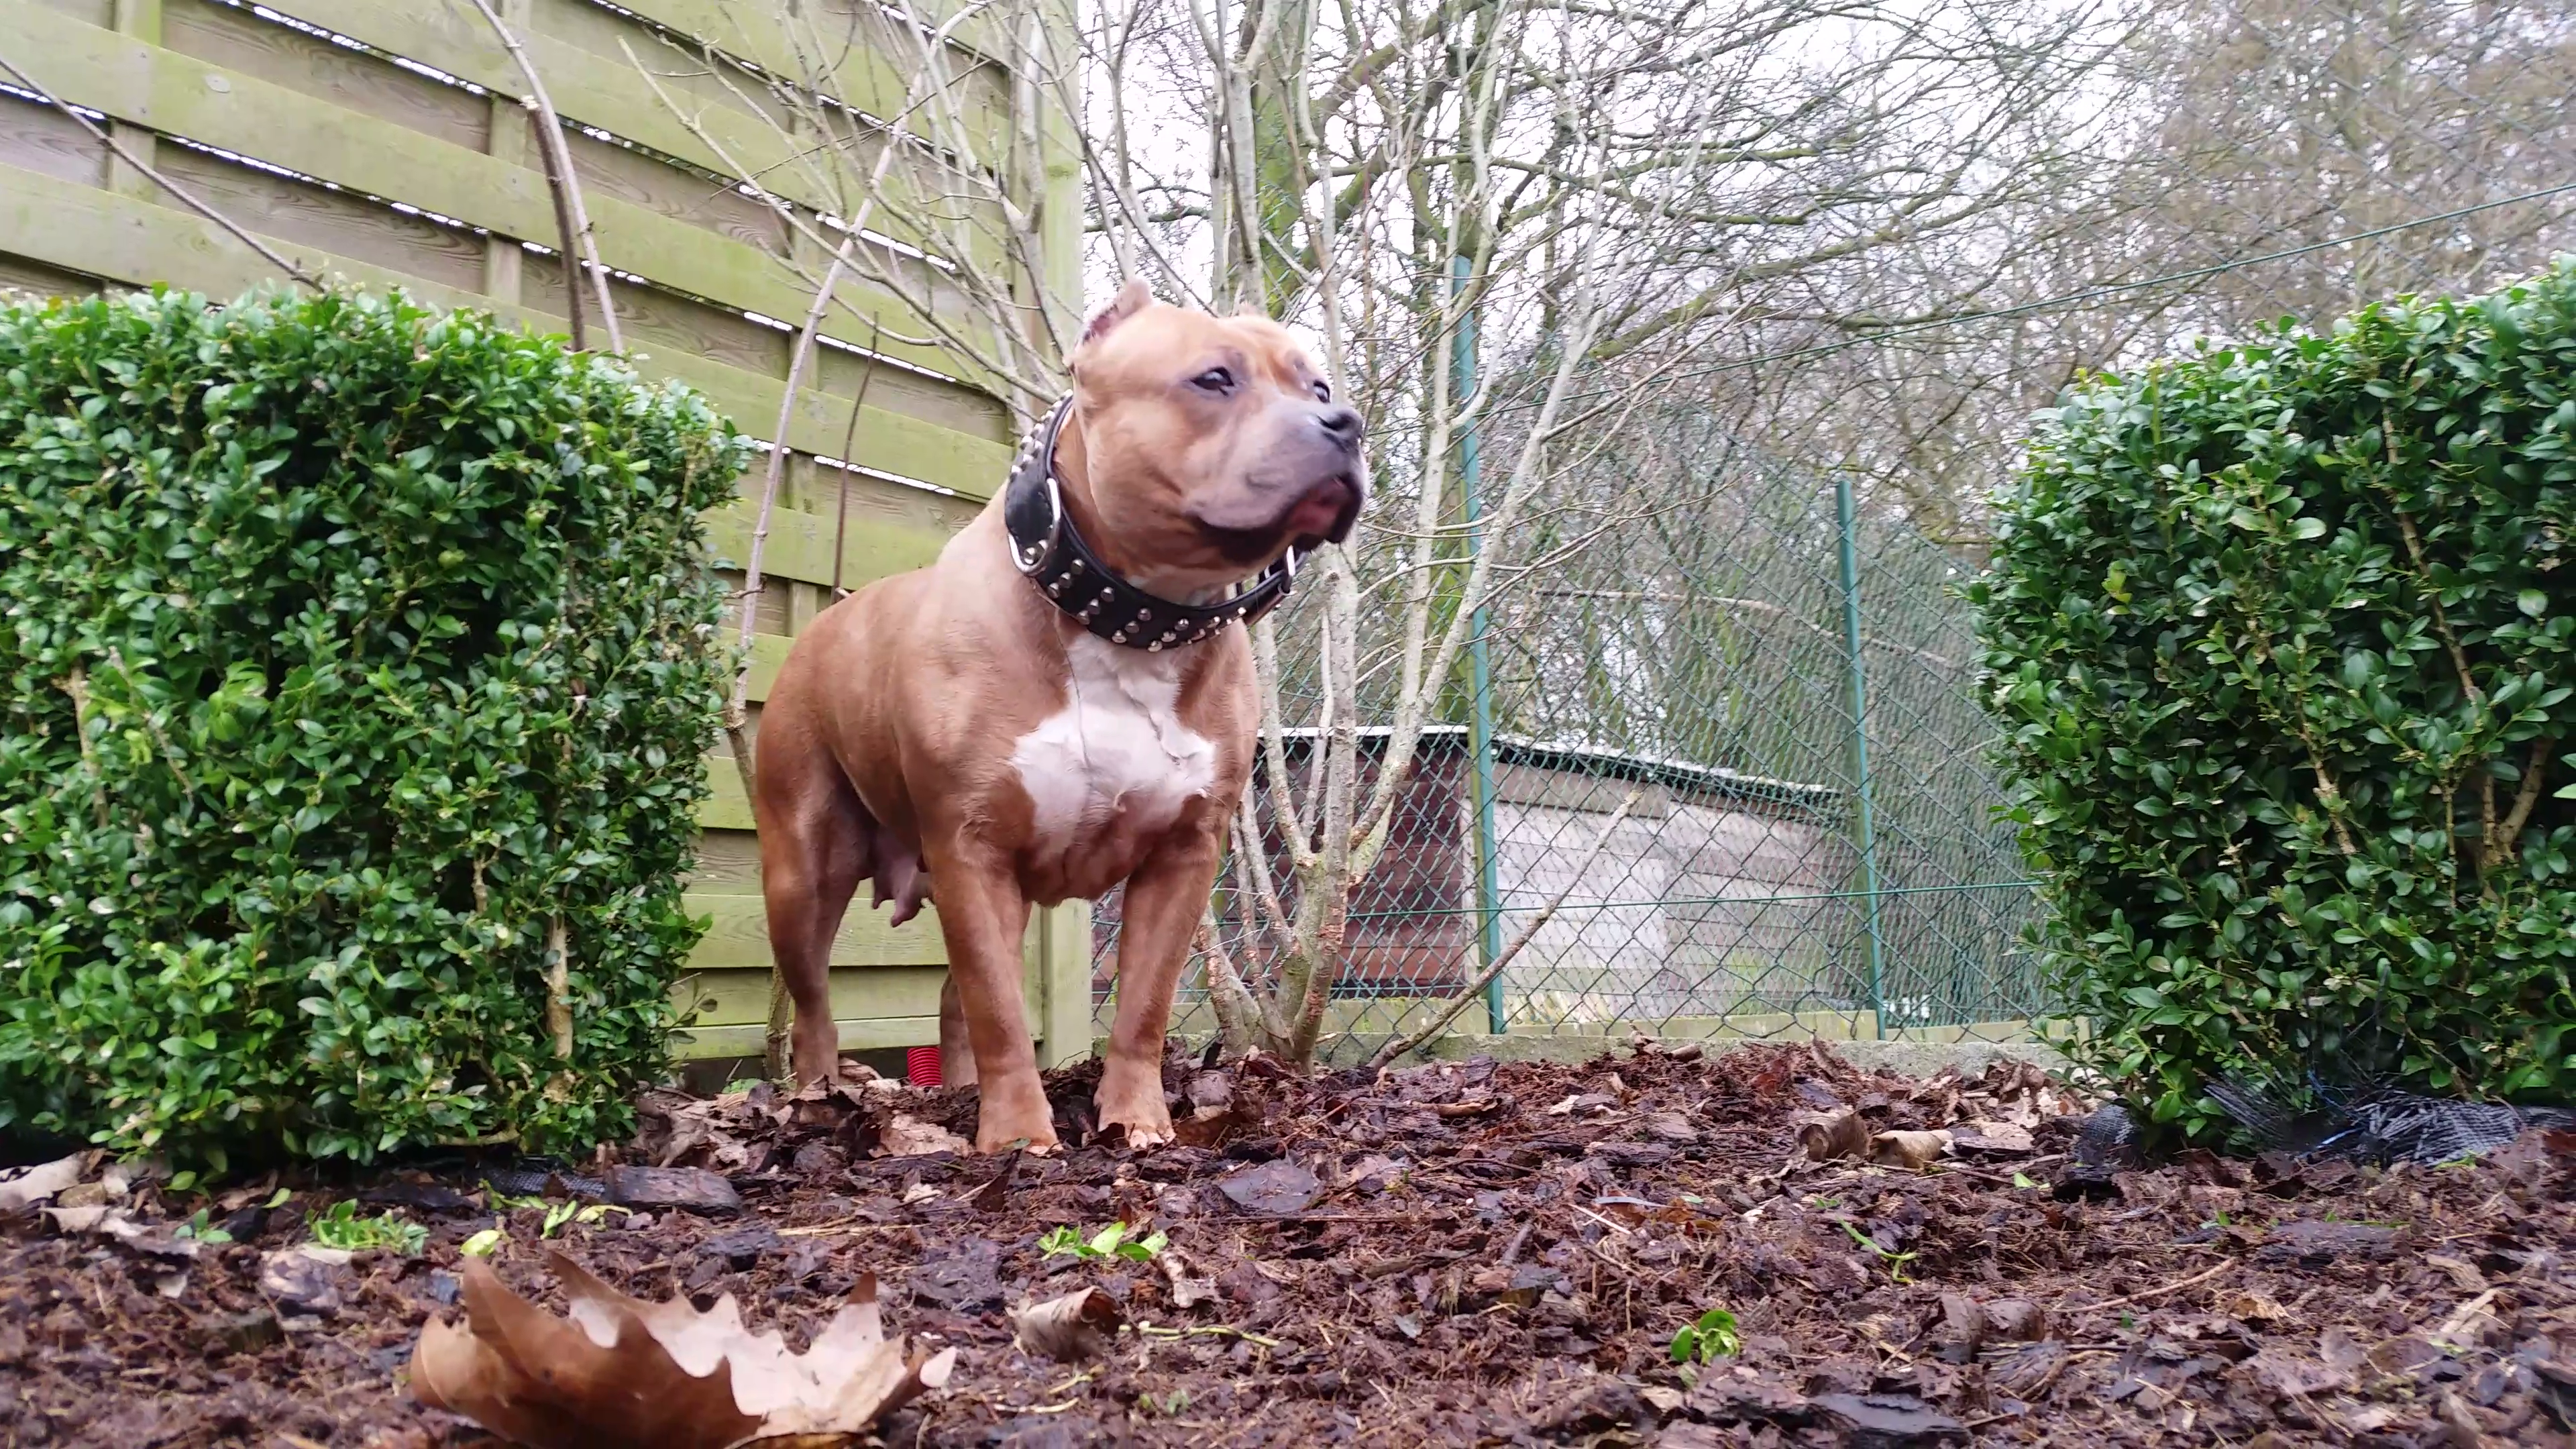 American Bully Kennel The Falcon Lionheart Bloodline Magic